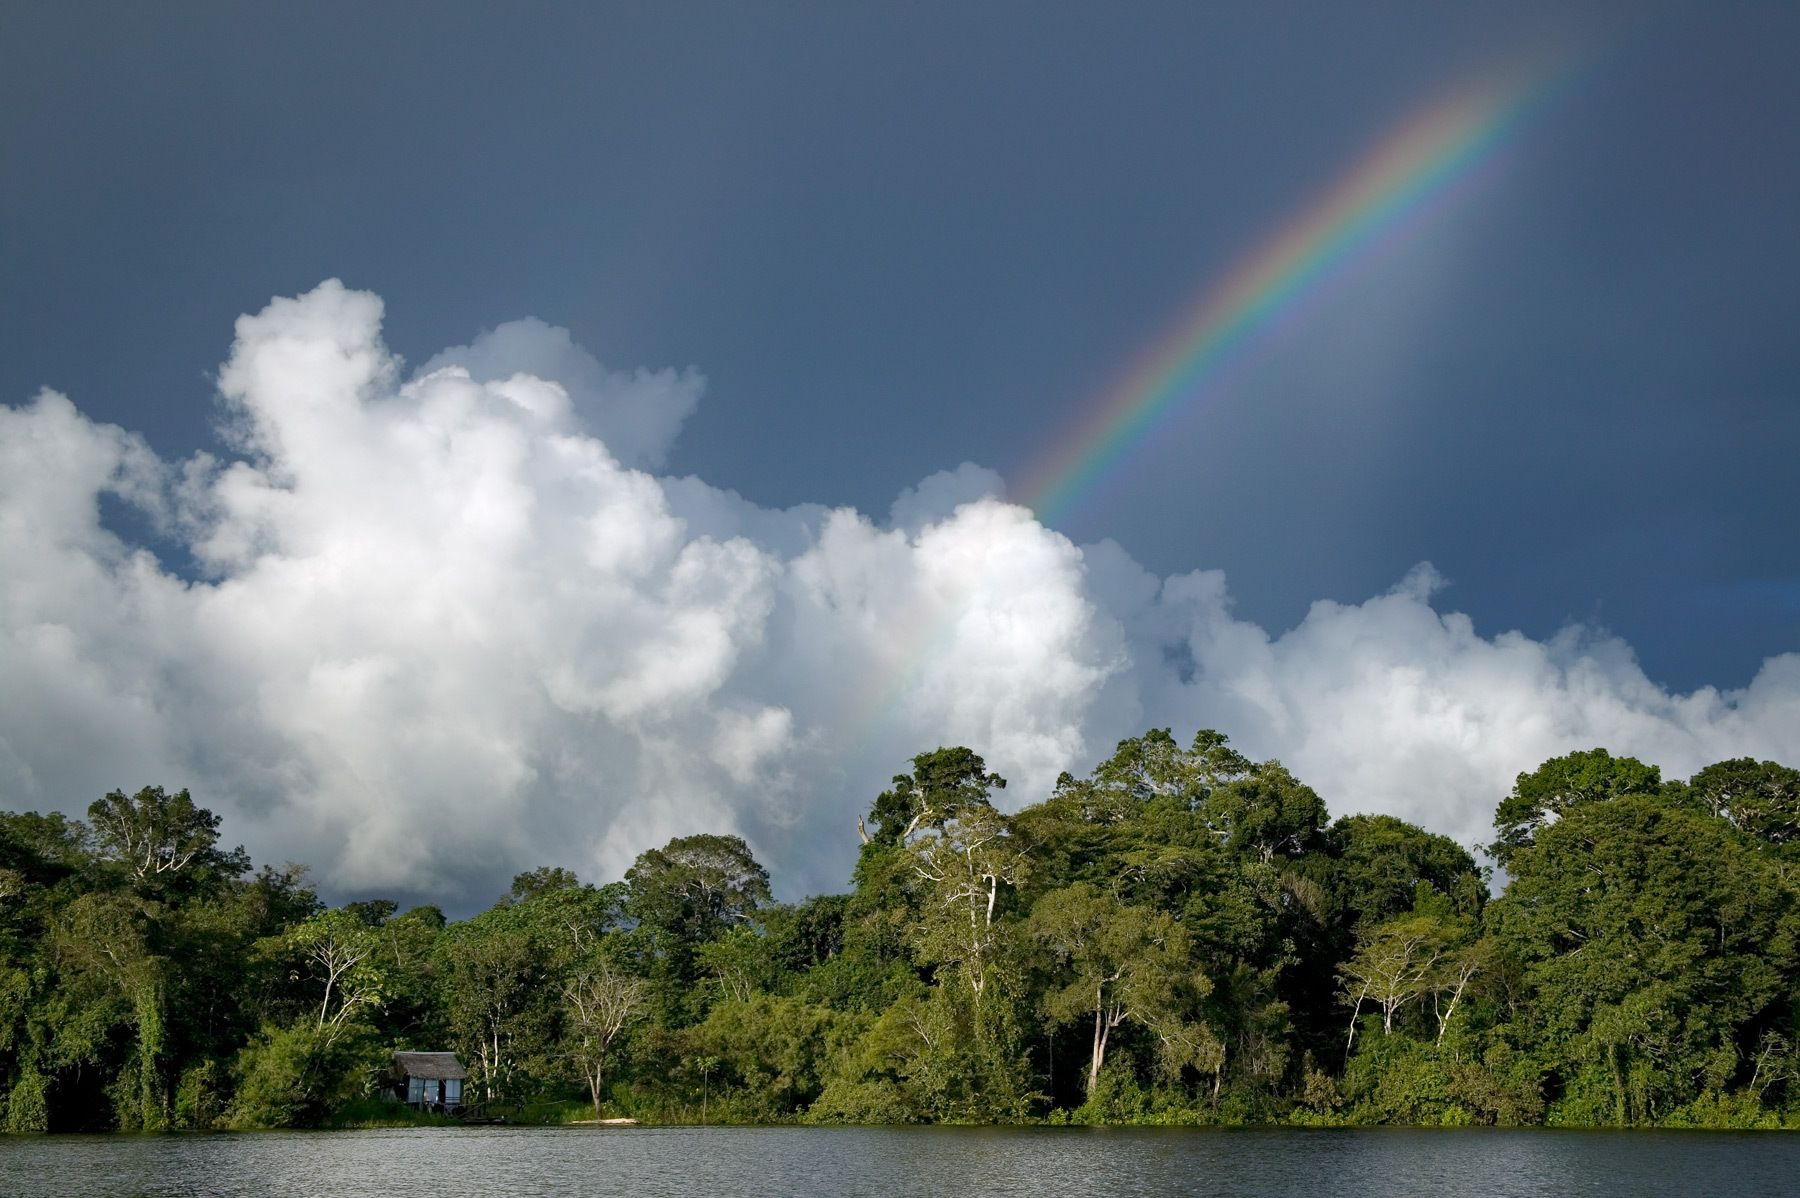 At the edge of the Amazonas